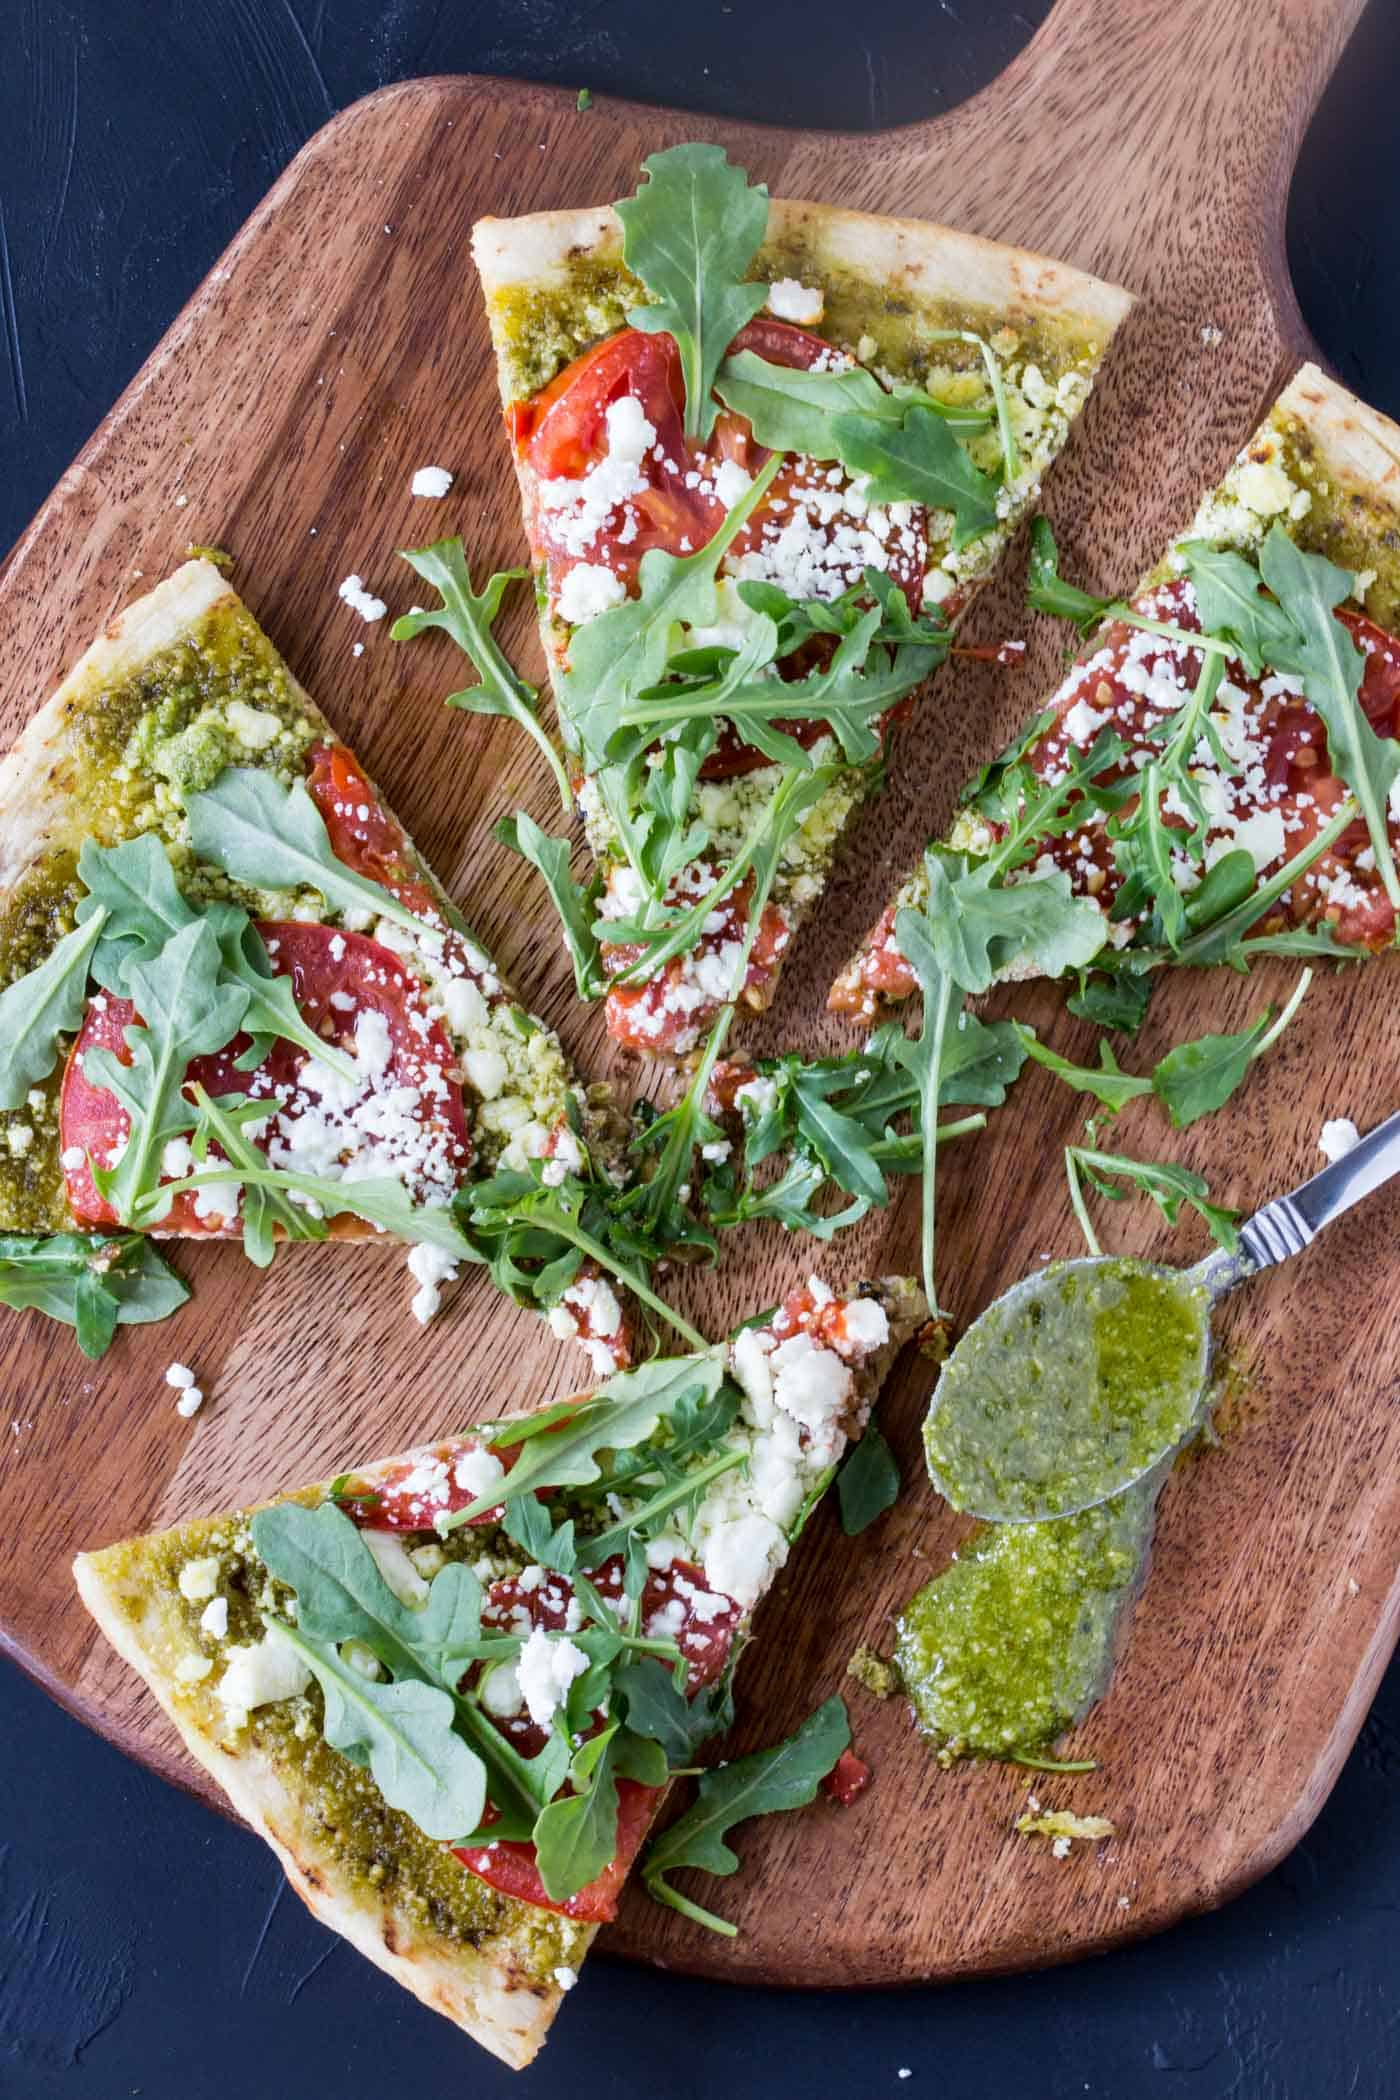 Wooden cutting board with three slices of Pesto Pizza with goat cheese, tomatoes and arugula.